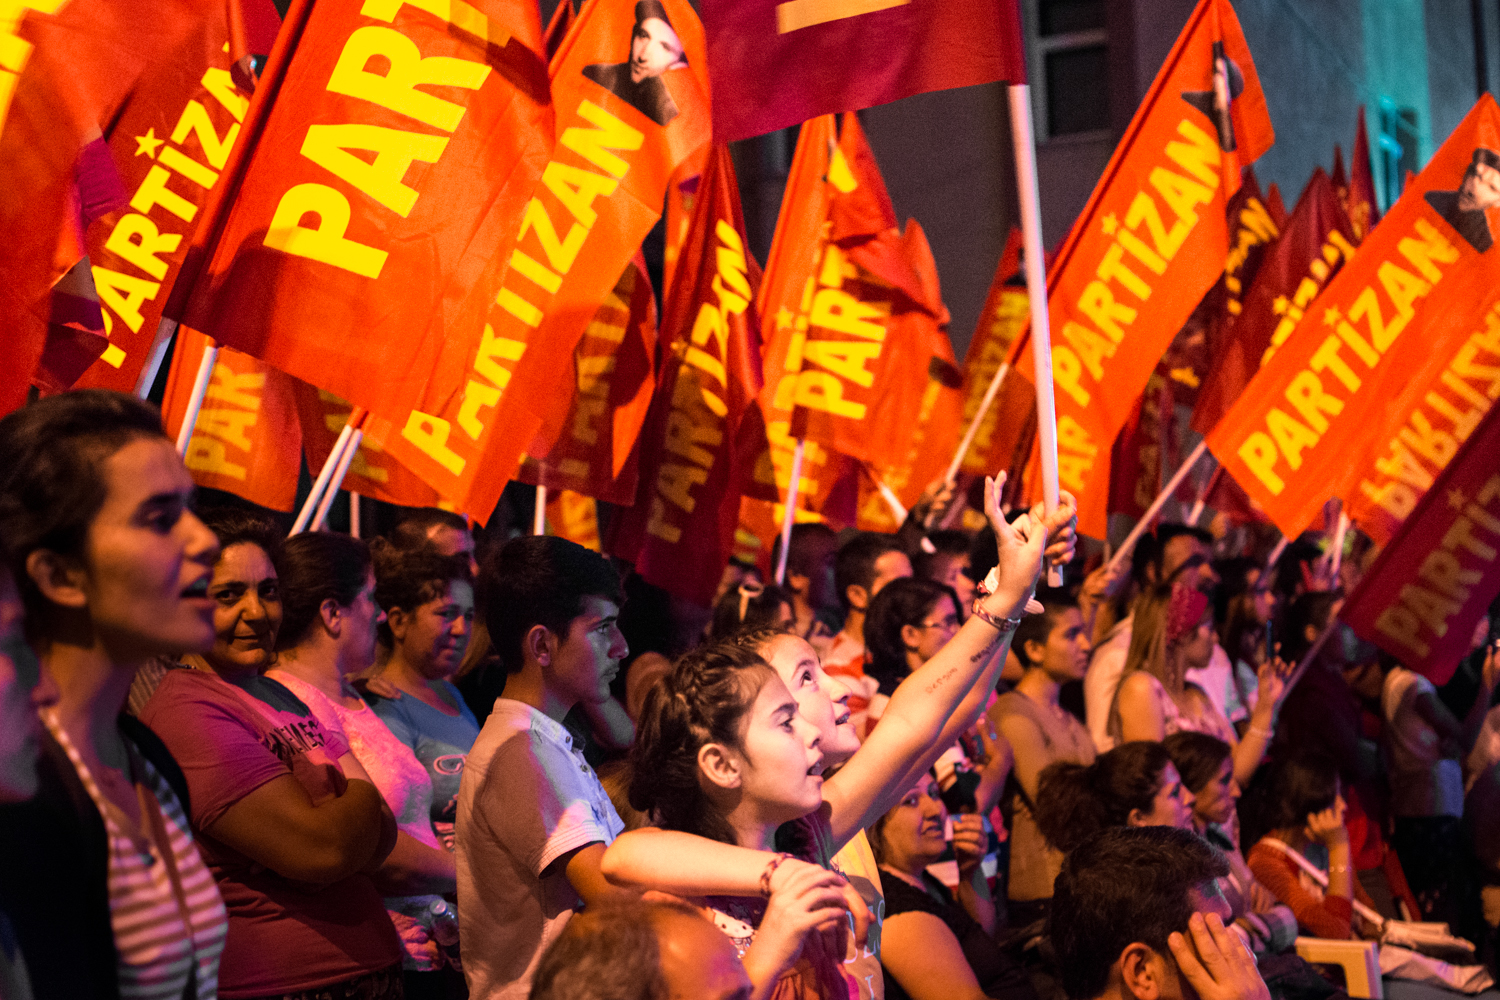 Munzur feels very politically engaged, and many people lean Communist. In March, 2014, the town of Ovacik elected the first Communist mayor in the history of Turkey. Here, a music festival turns into a rally.